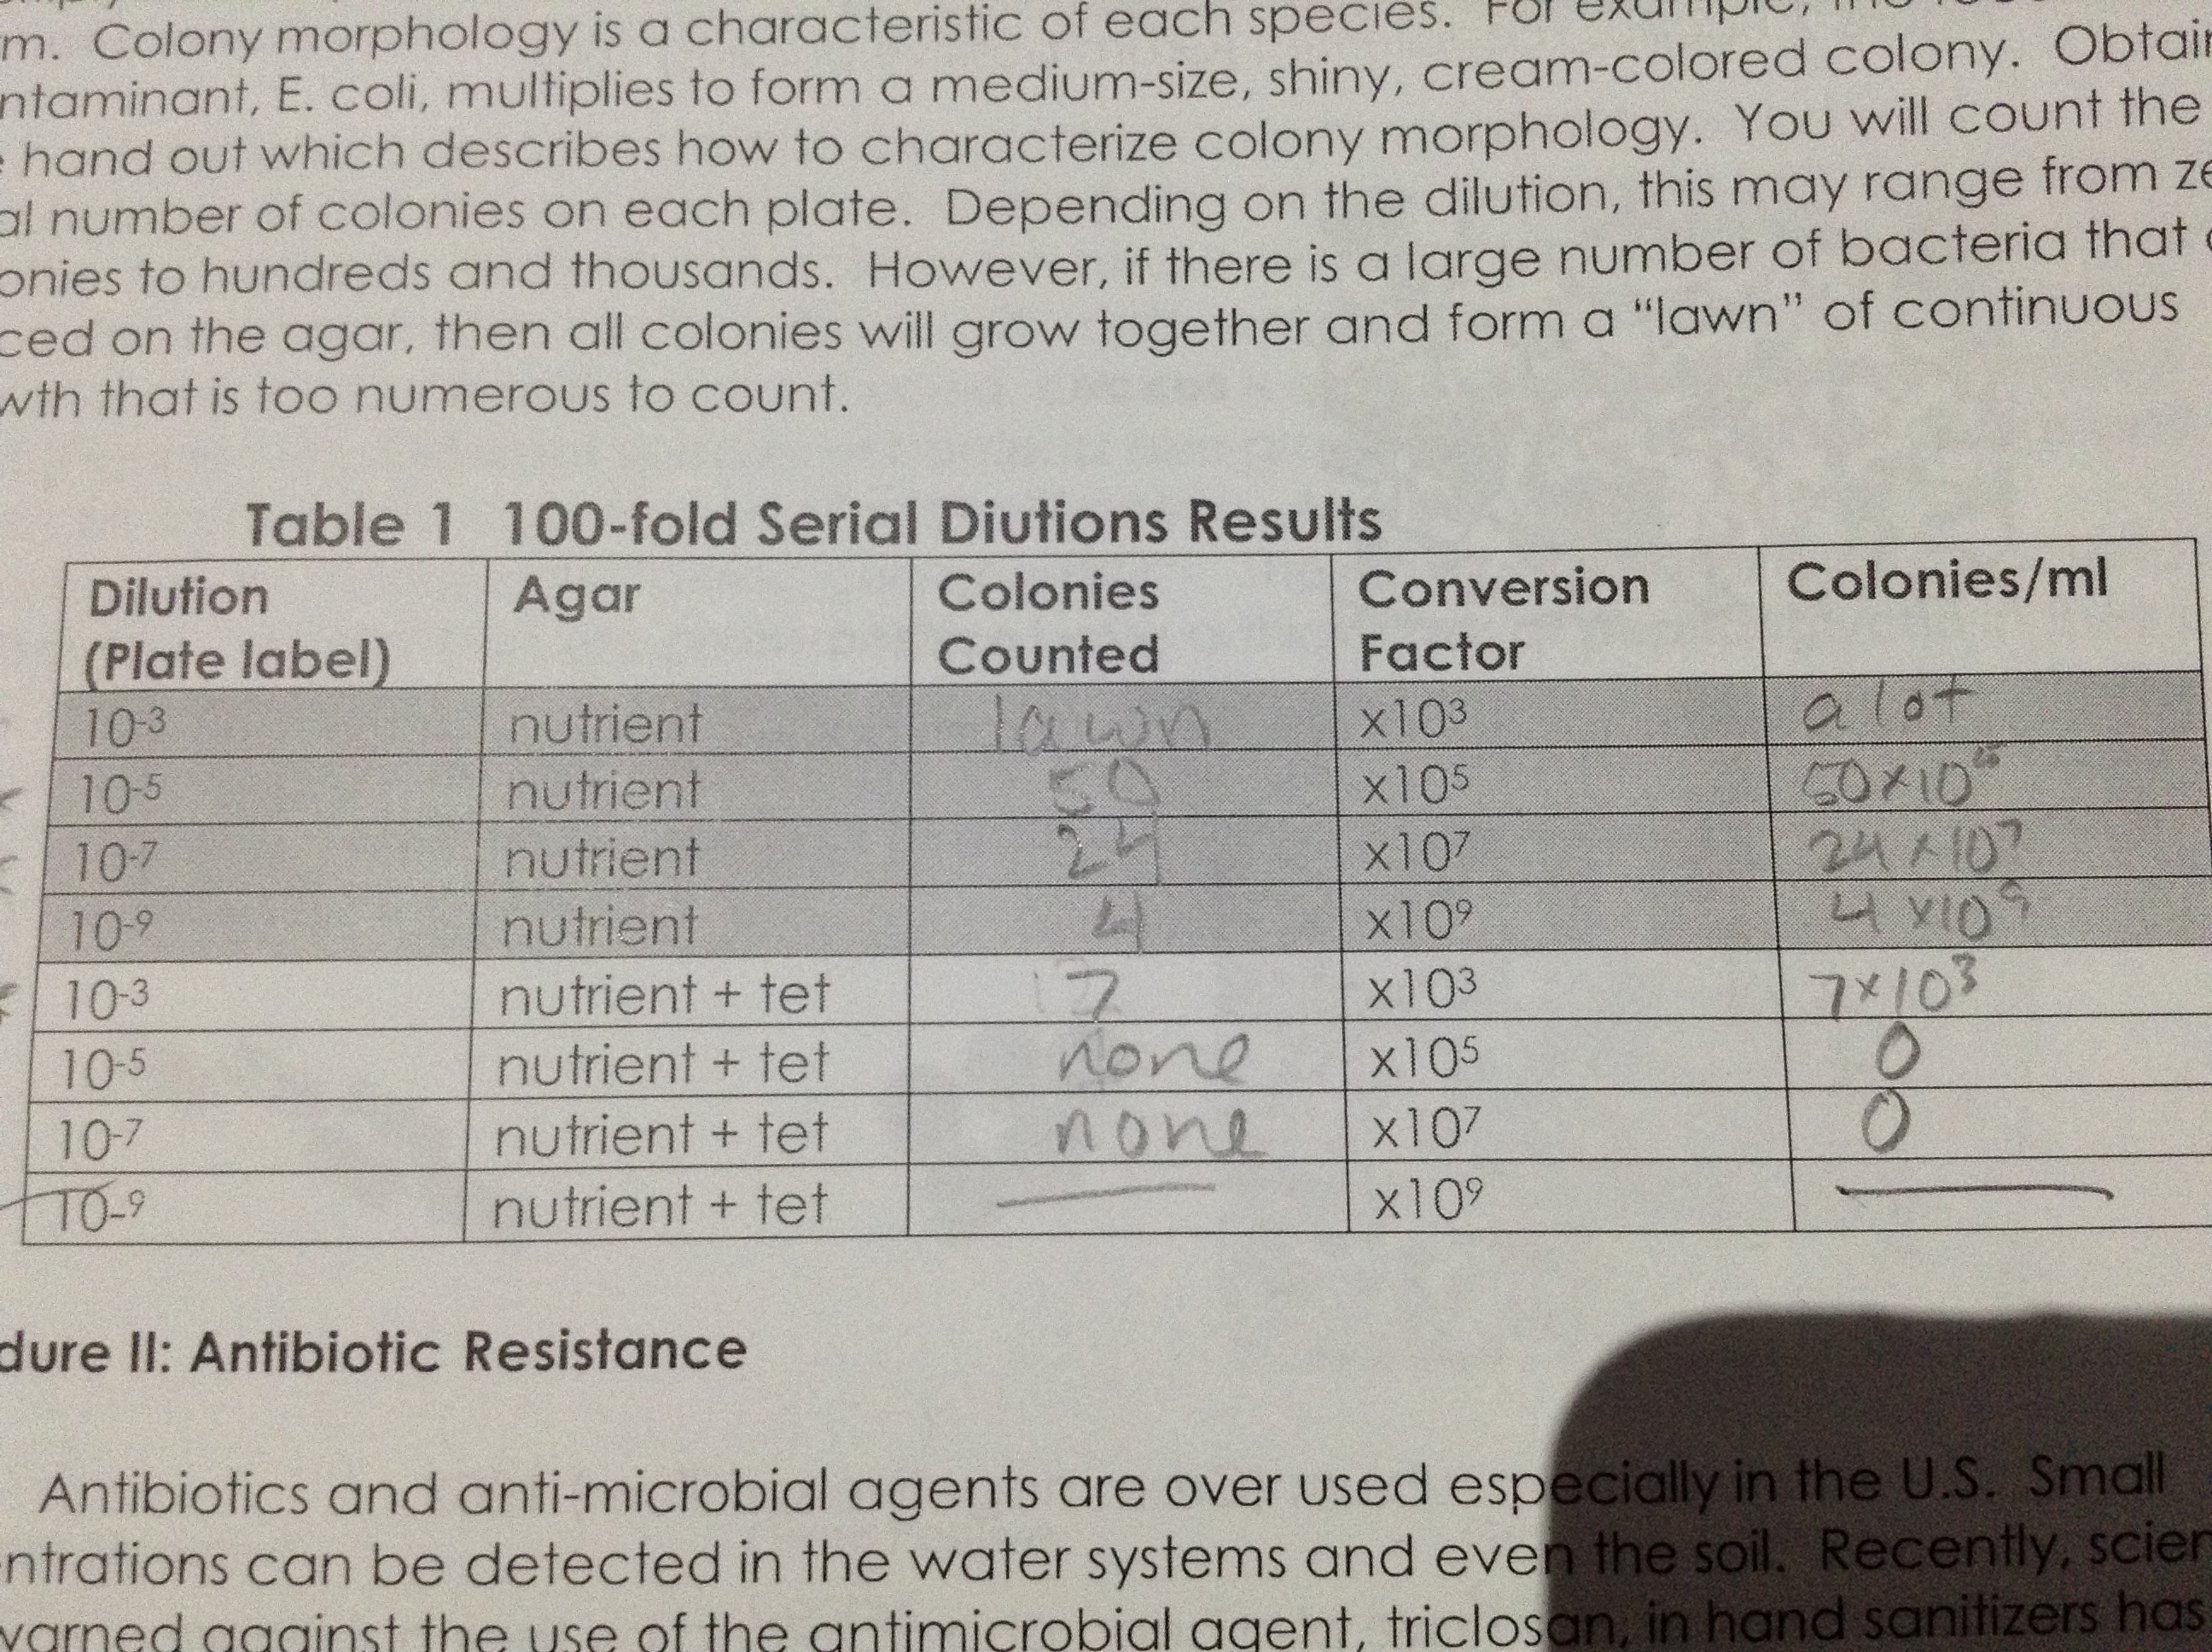 Image:Serial Dilution Results 001.jpg